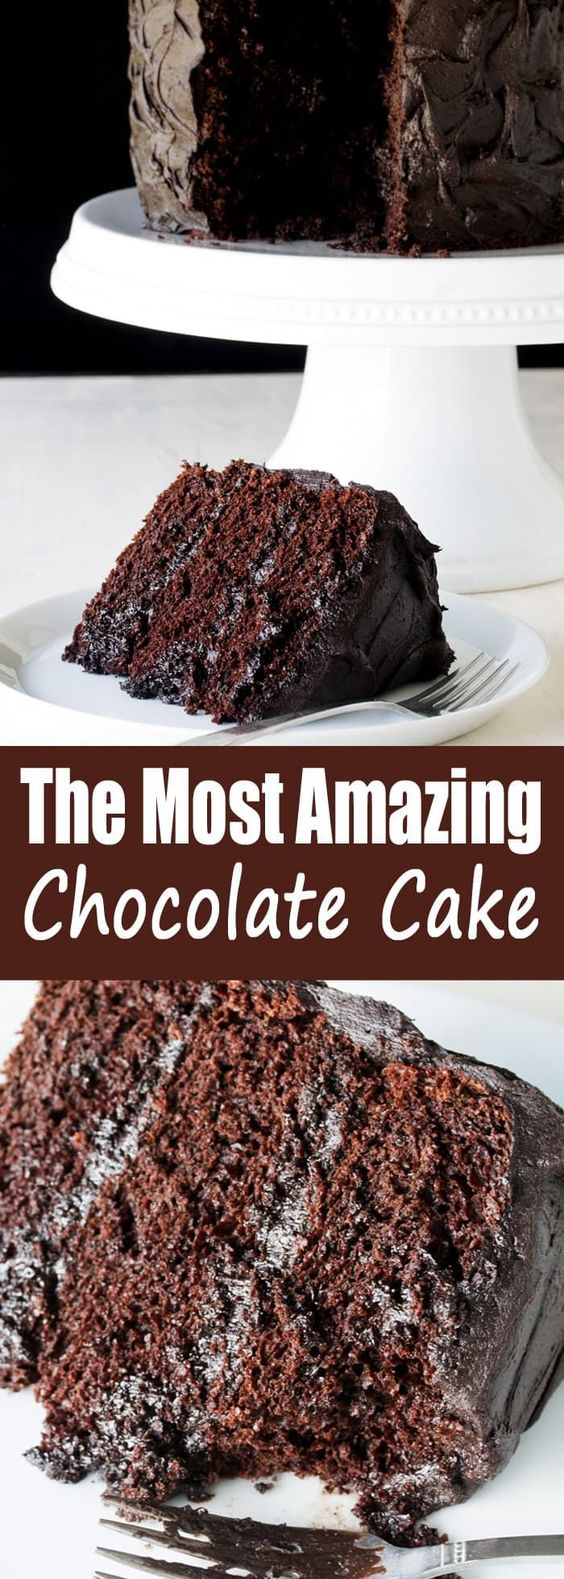 You won't find a better chocolate cake recipe than this one. You will be amazed at how good it is, and you will amaze those that you make if for.